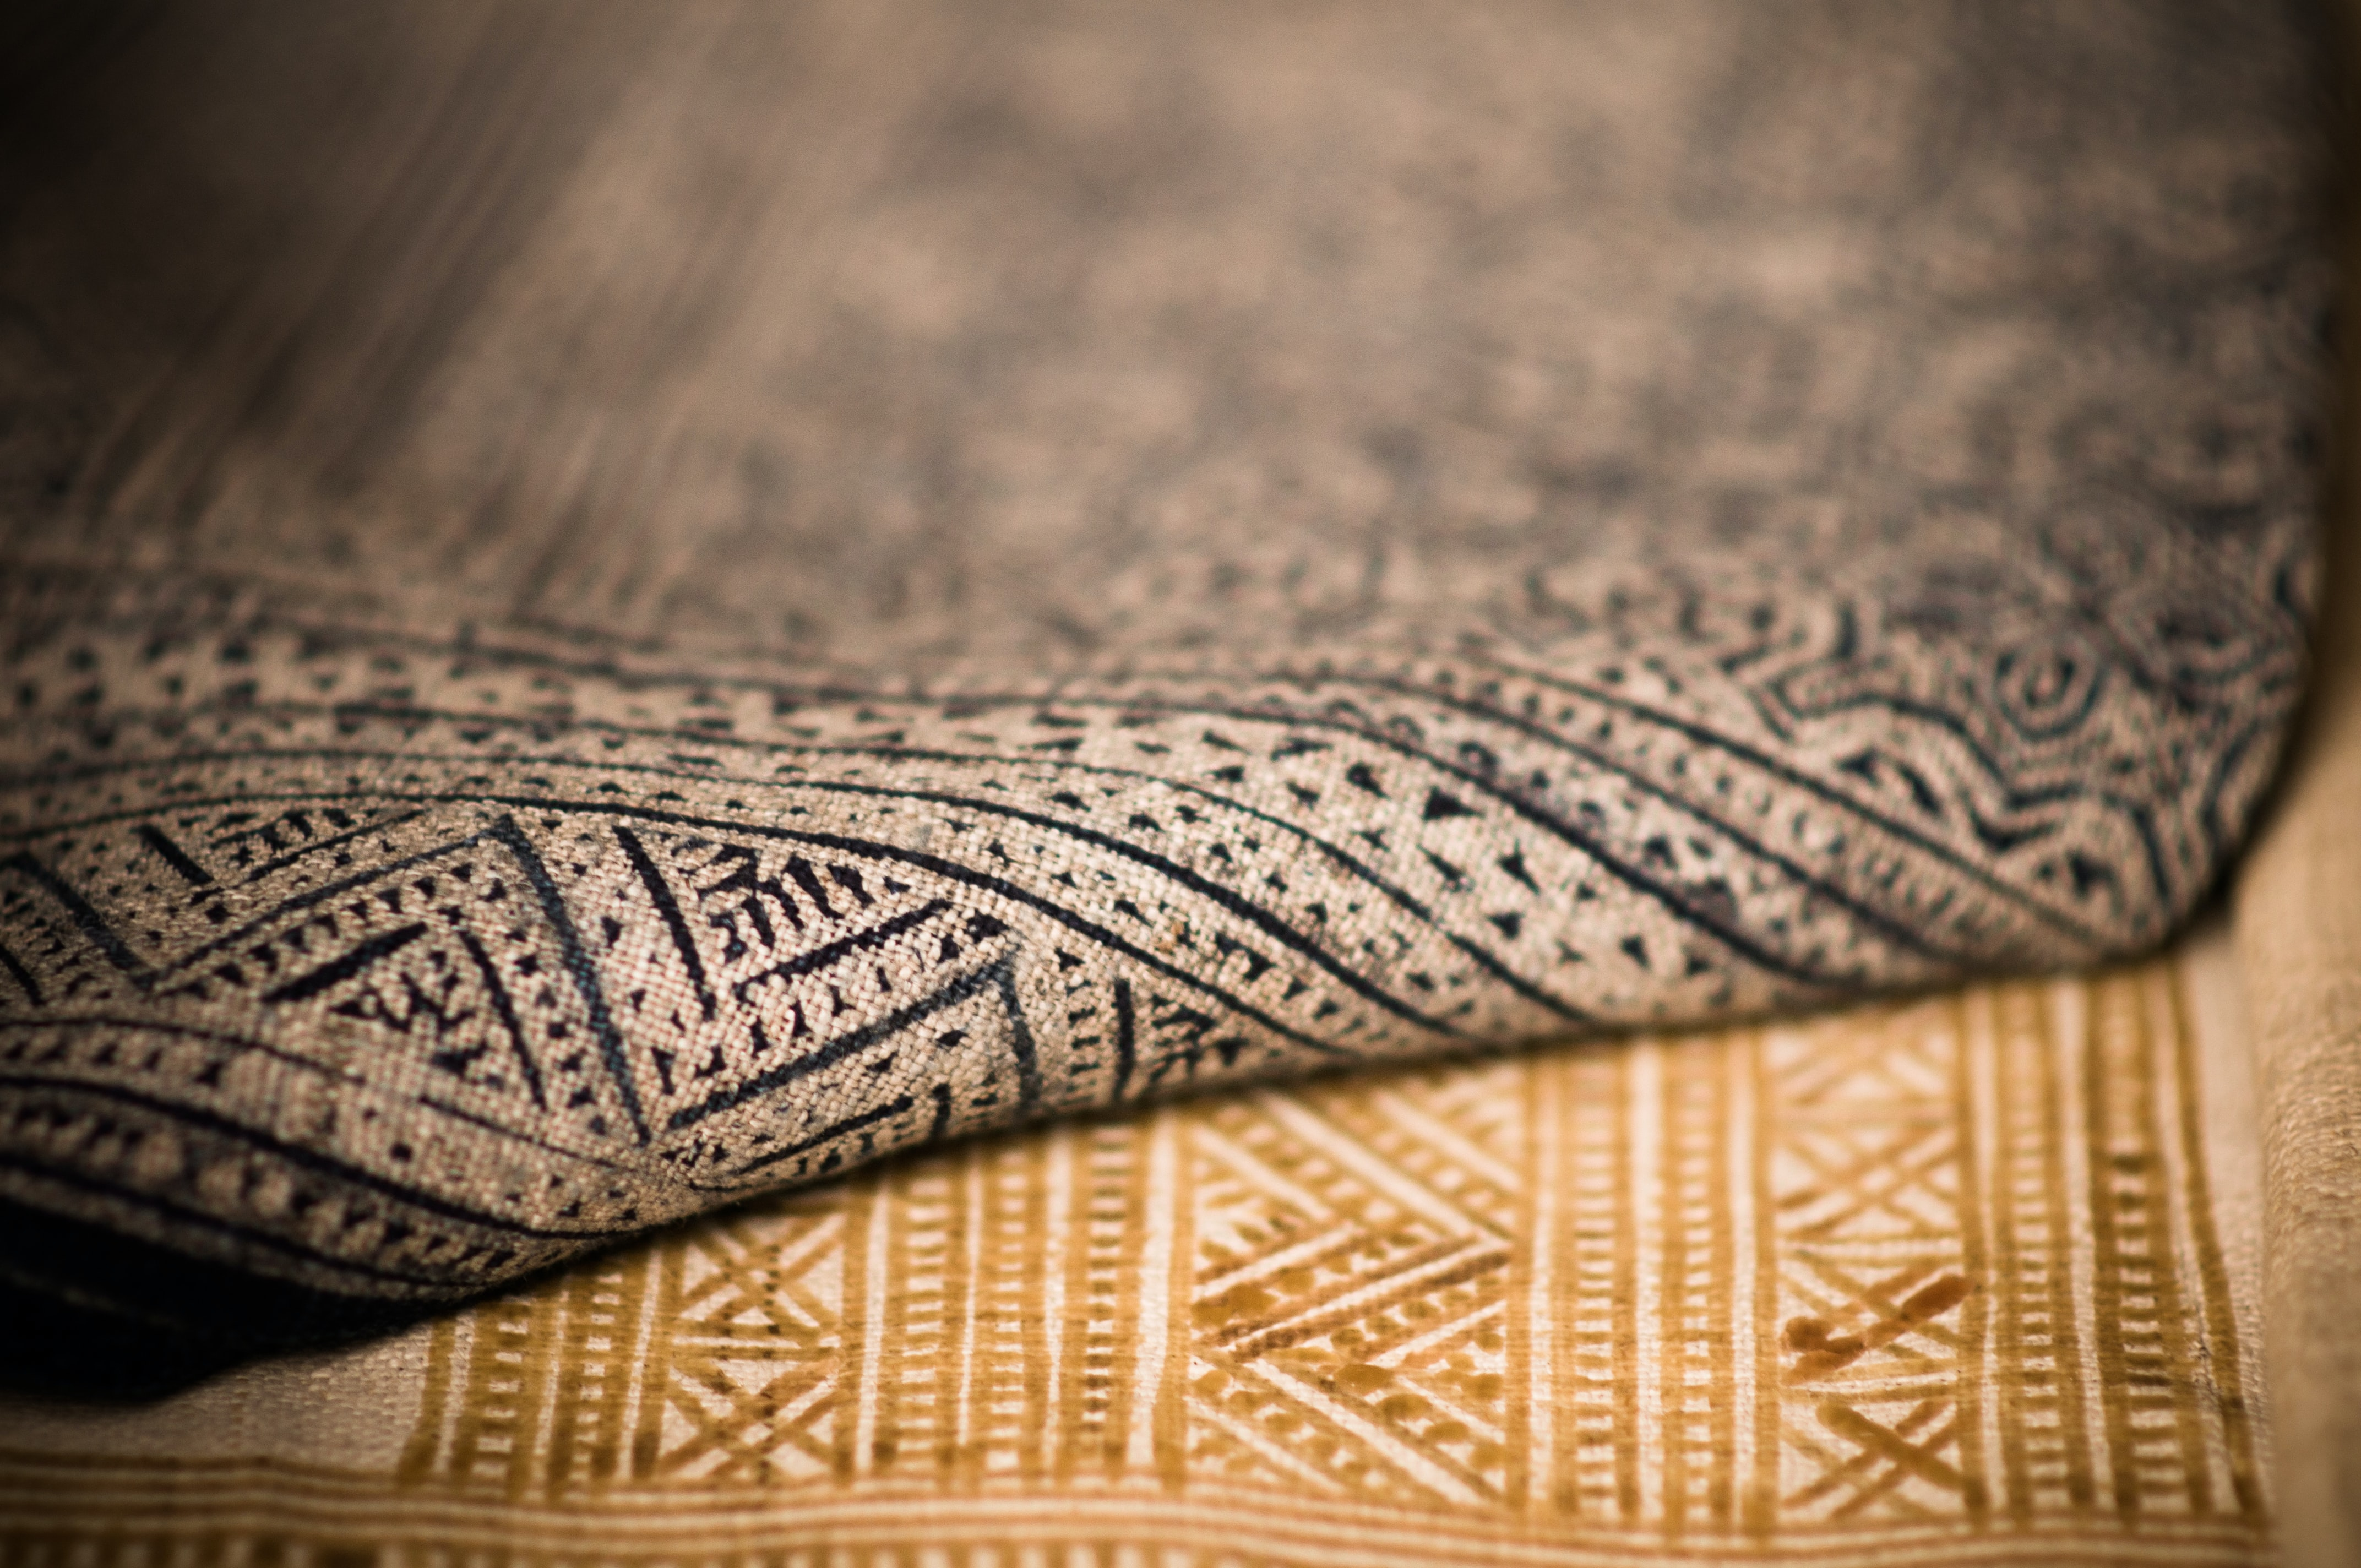 A close up that shows the texture of two different patterned rugs